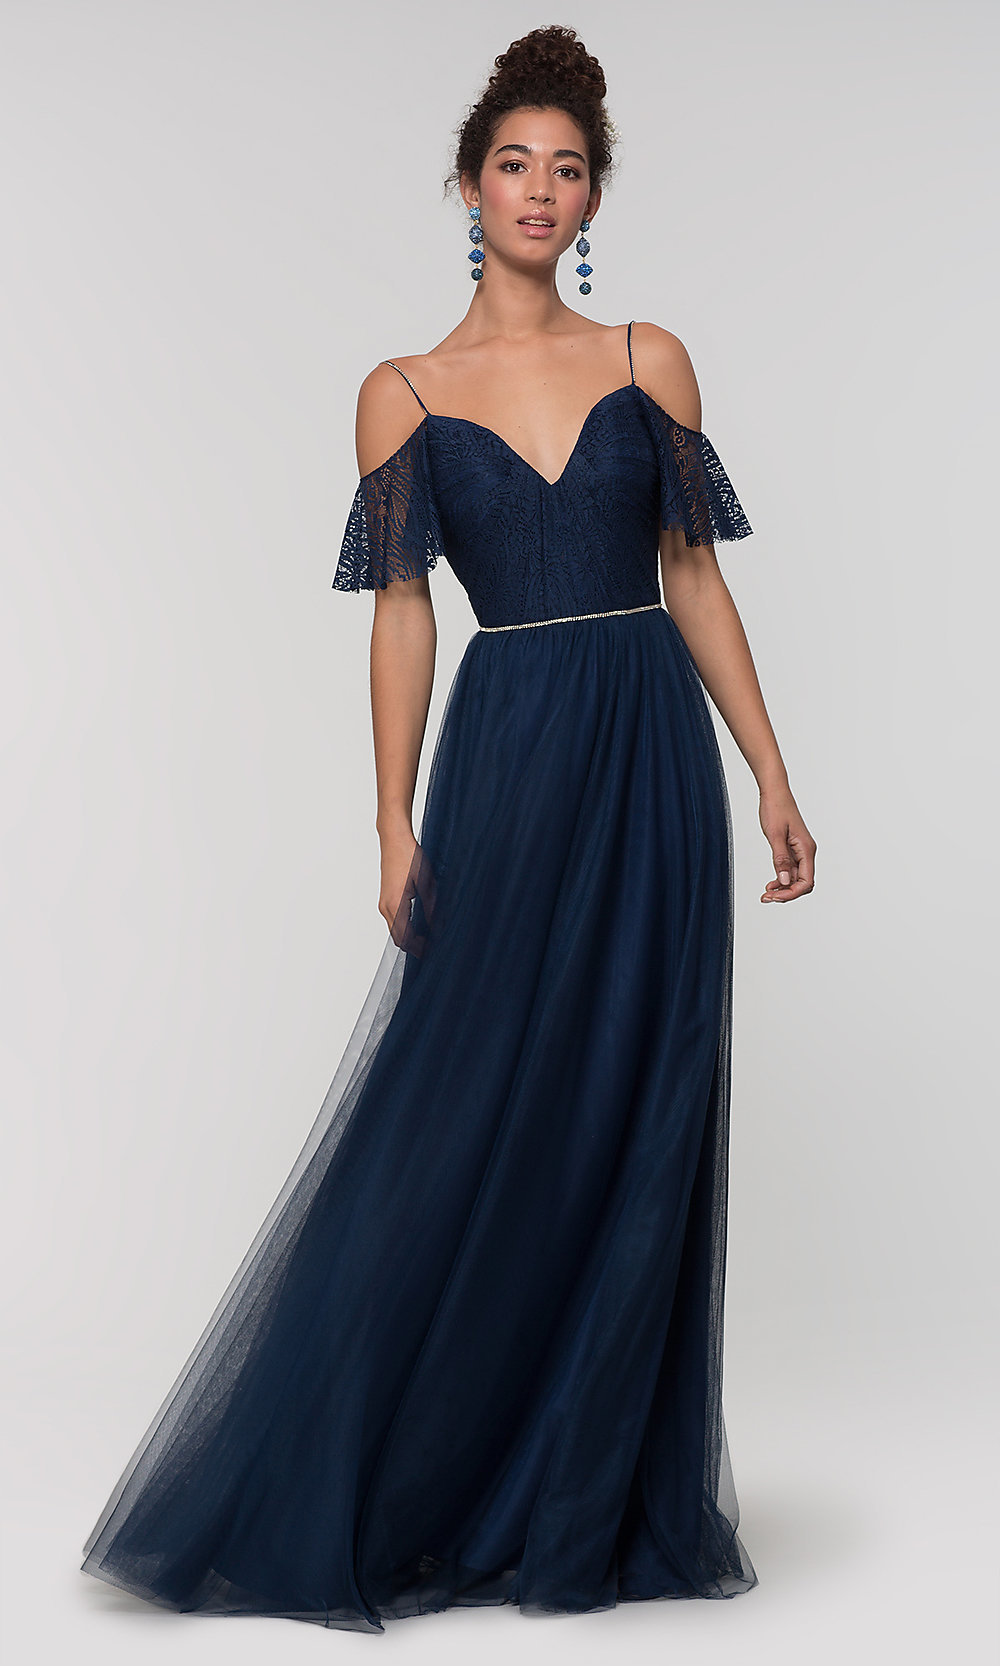 Tulle Bridesmaid Dress By Kleinfeld With Lace Bodice